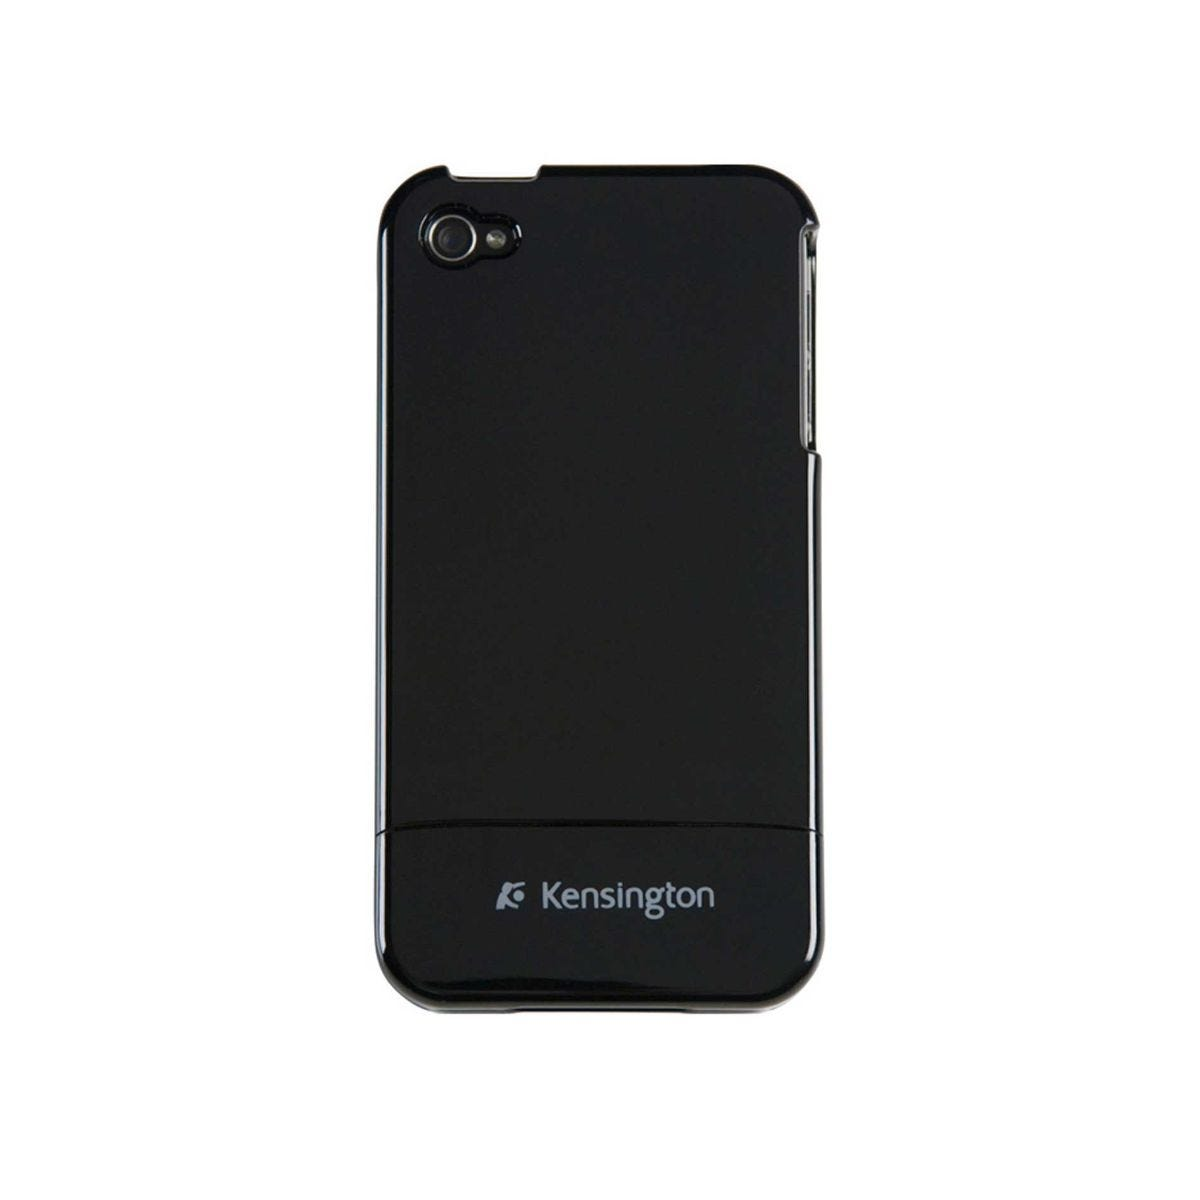 Kensington iPhone 4 Capsule Case, Black